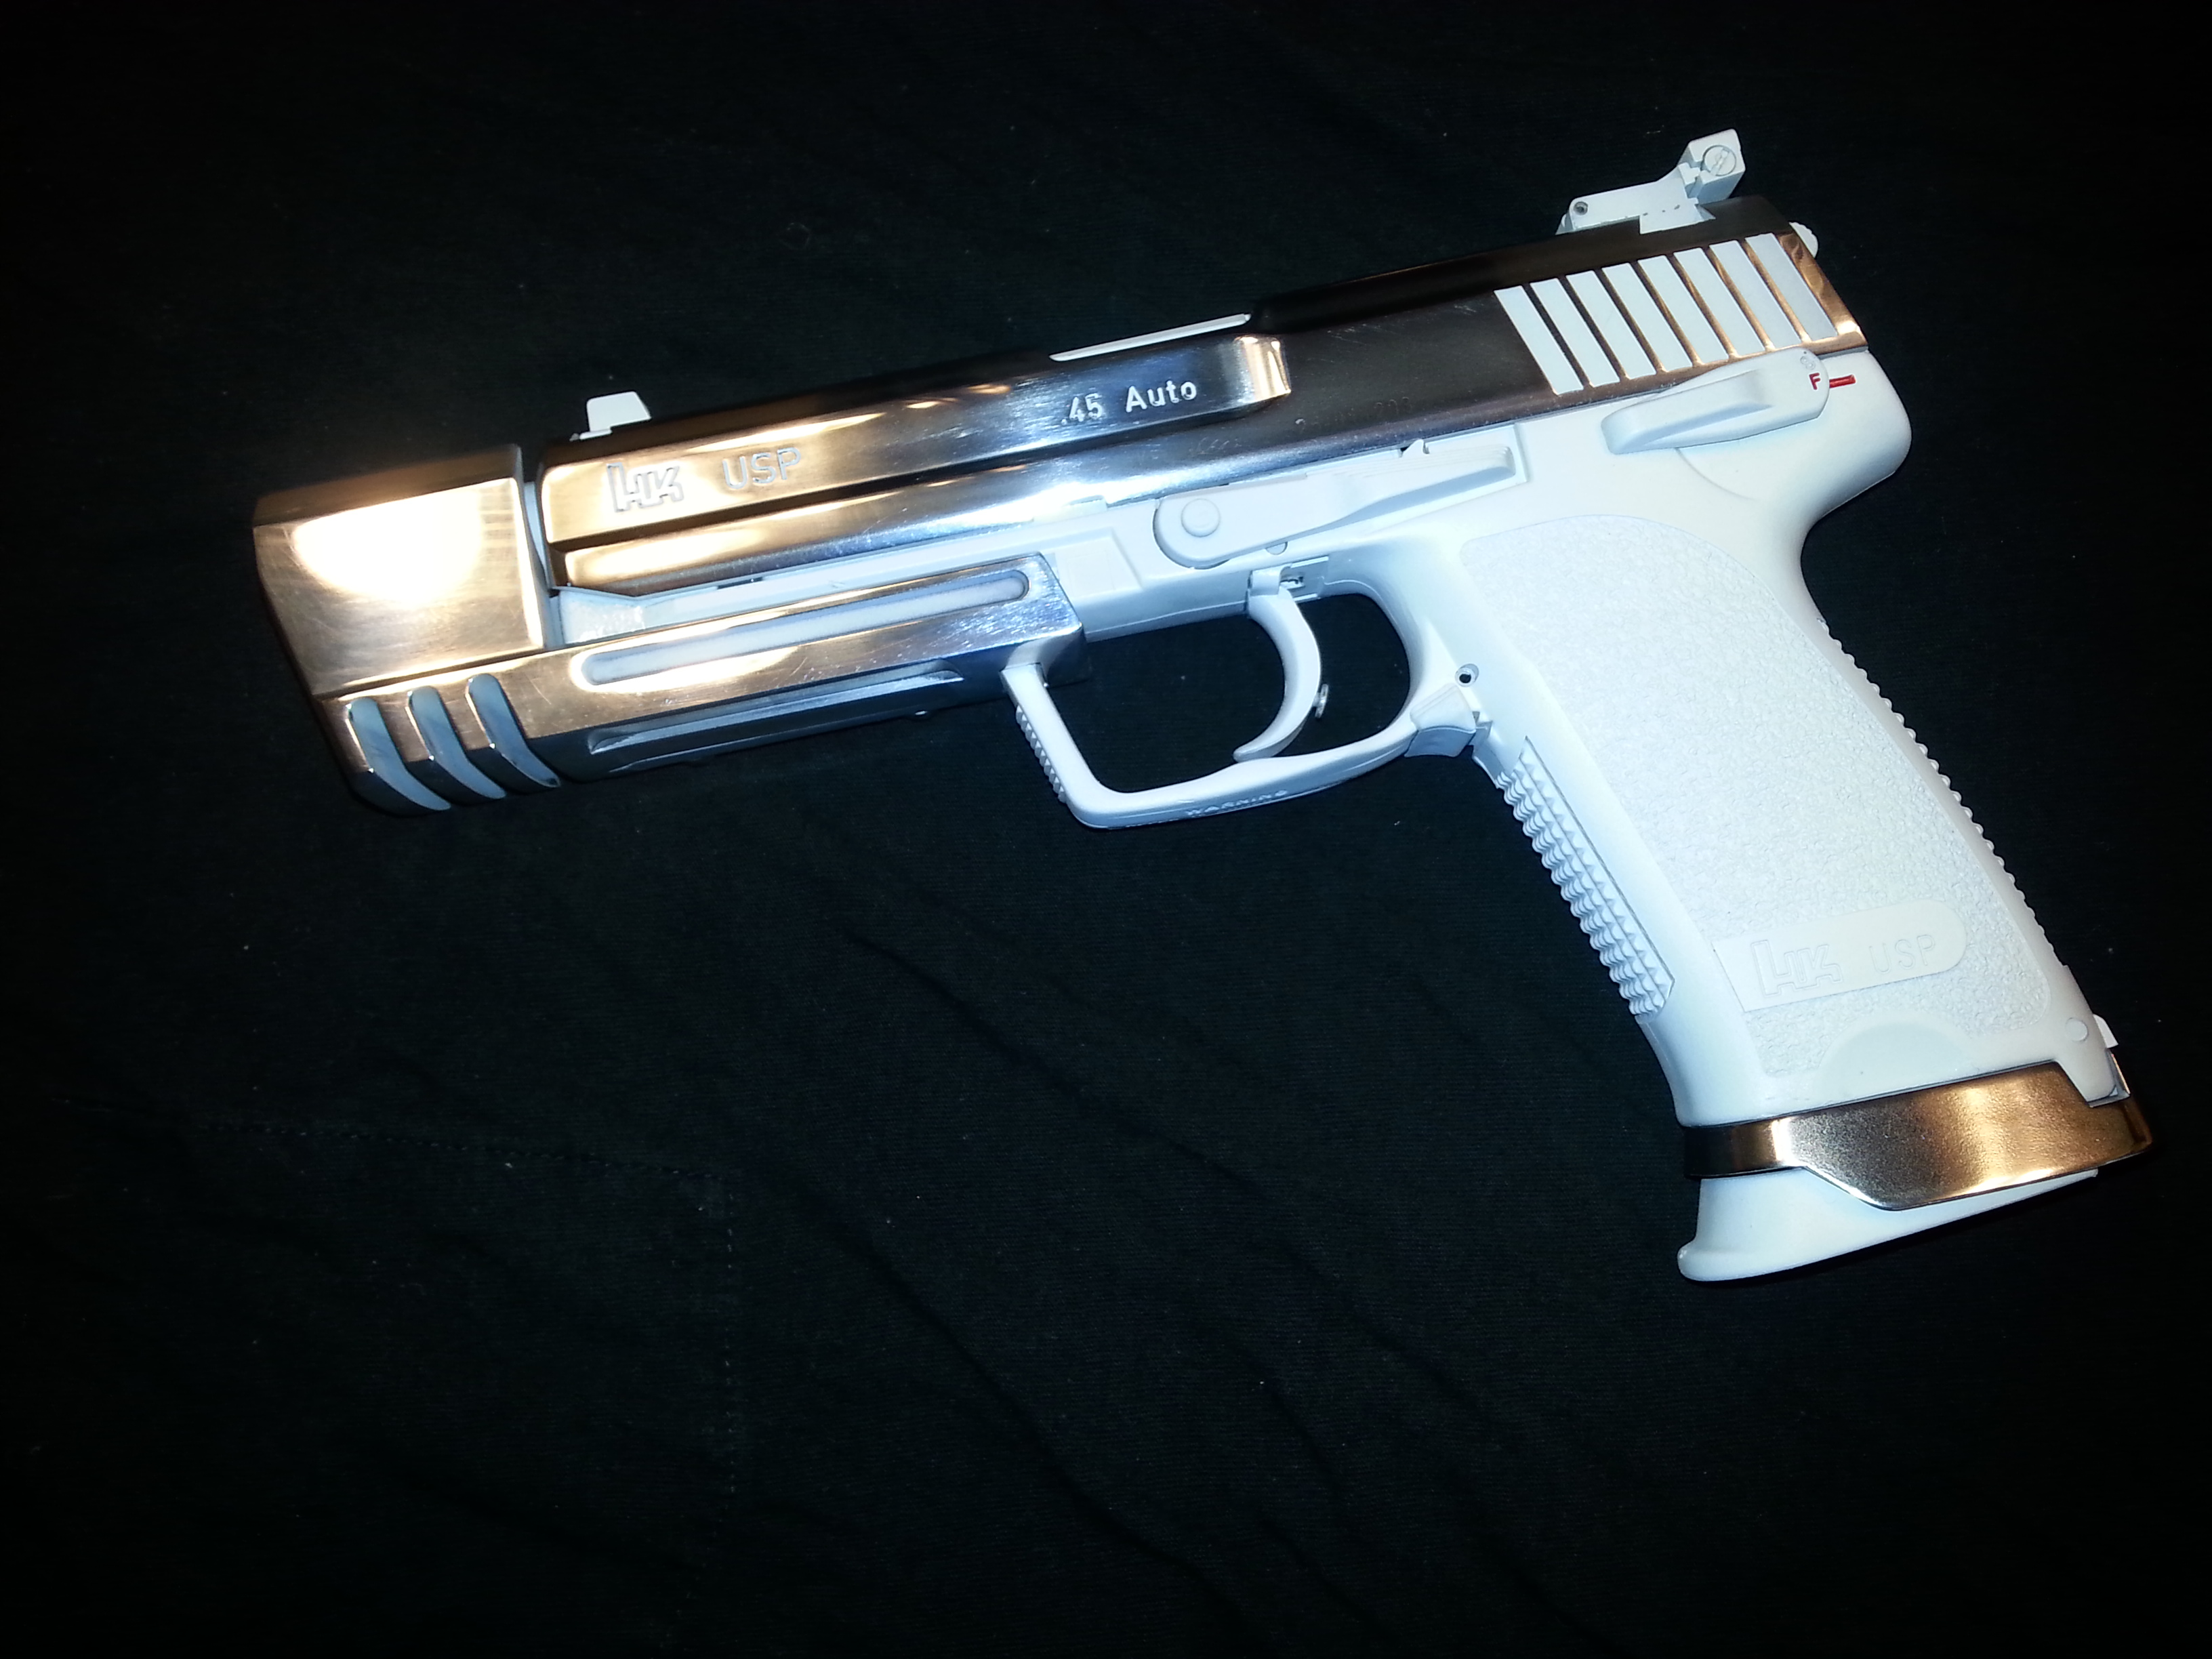 Let's See Your USP's!-1.jpg